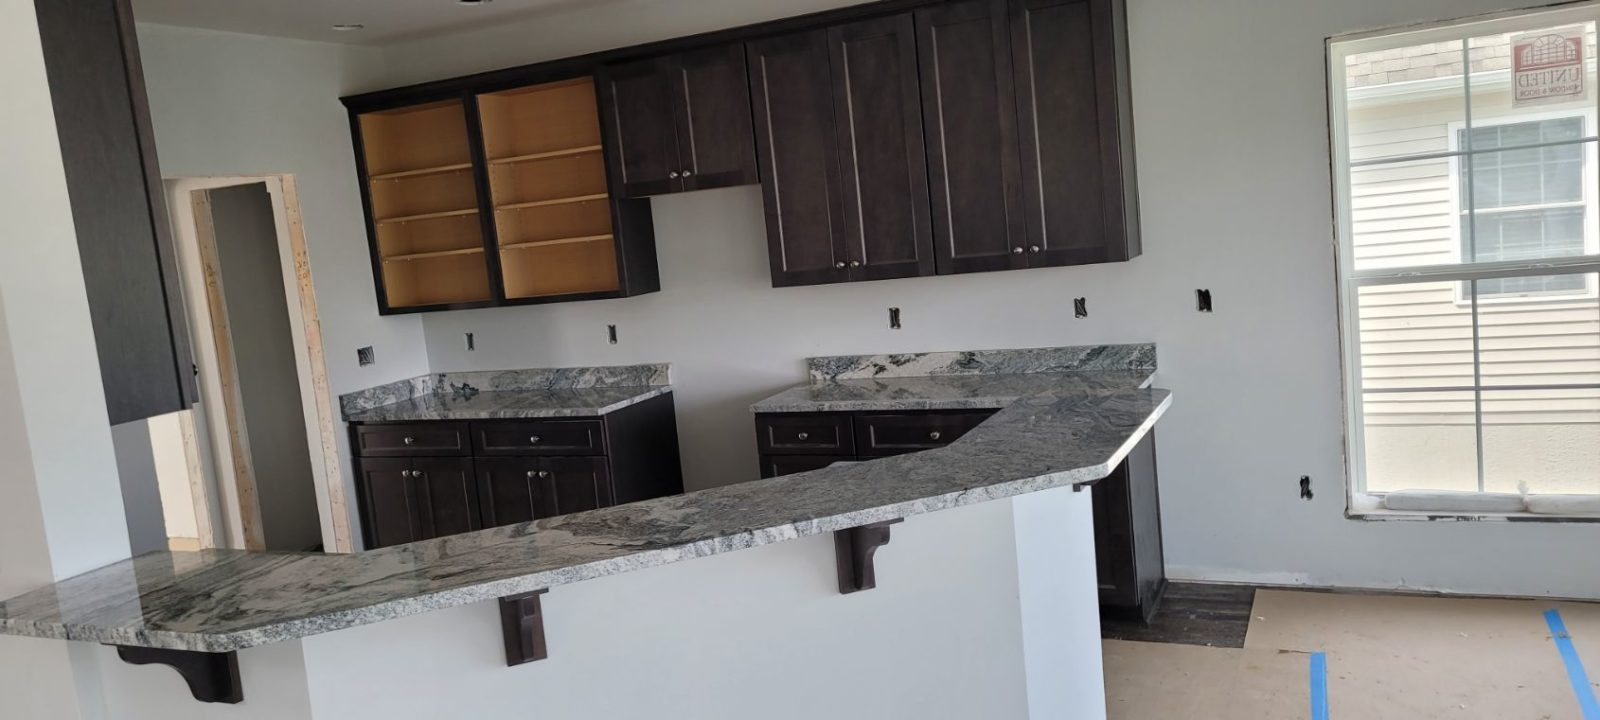 small kitchen remodeling accessible home builders delaware DE